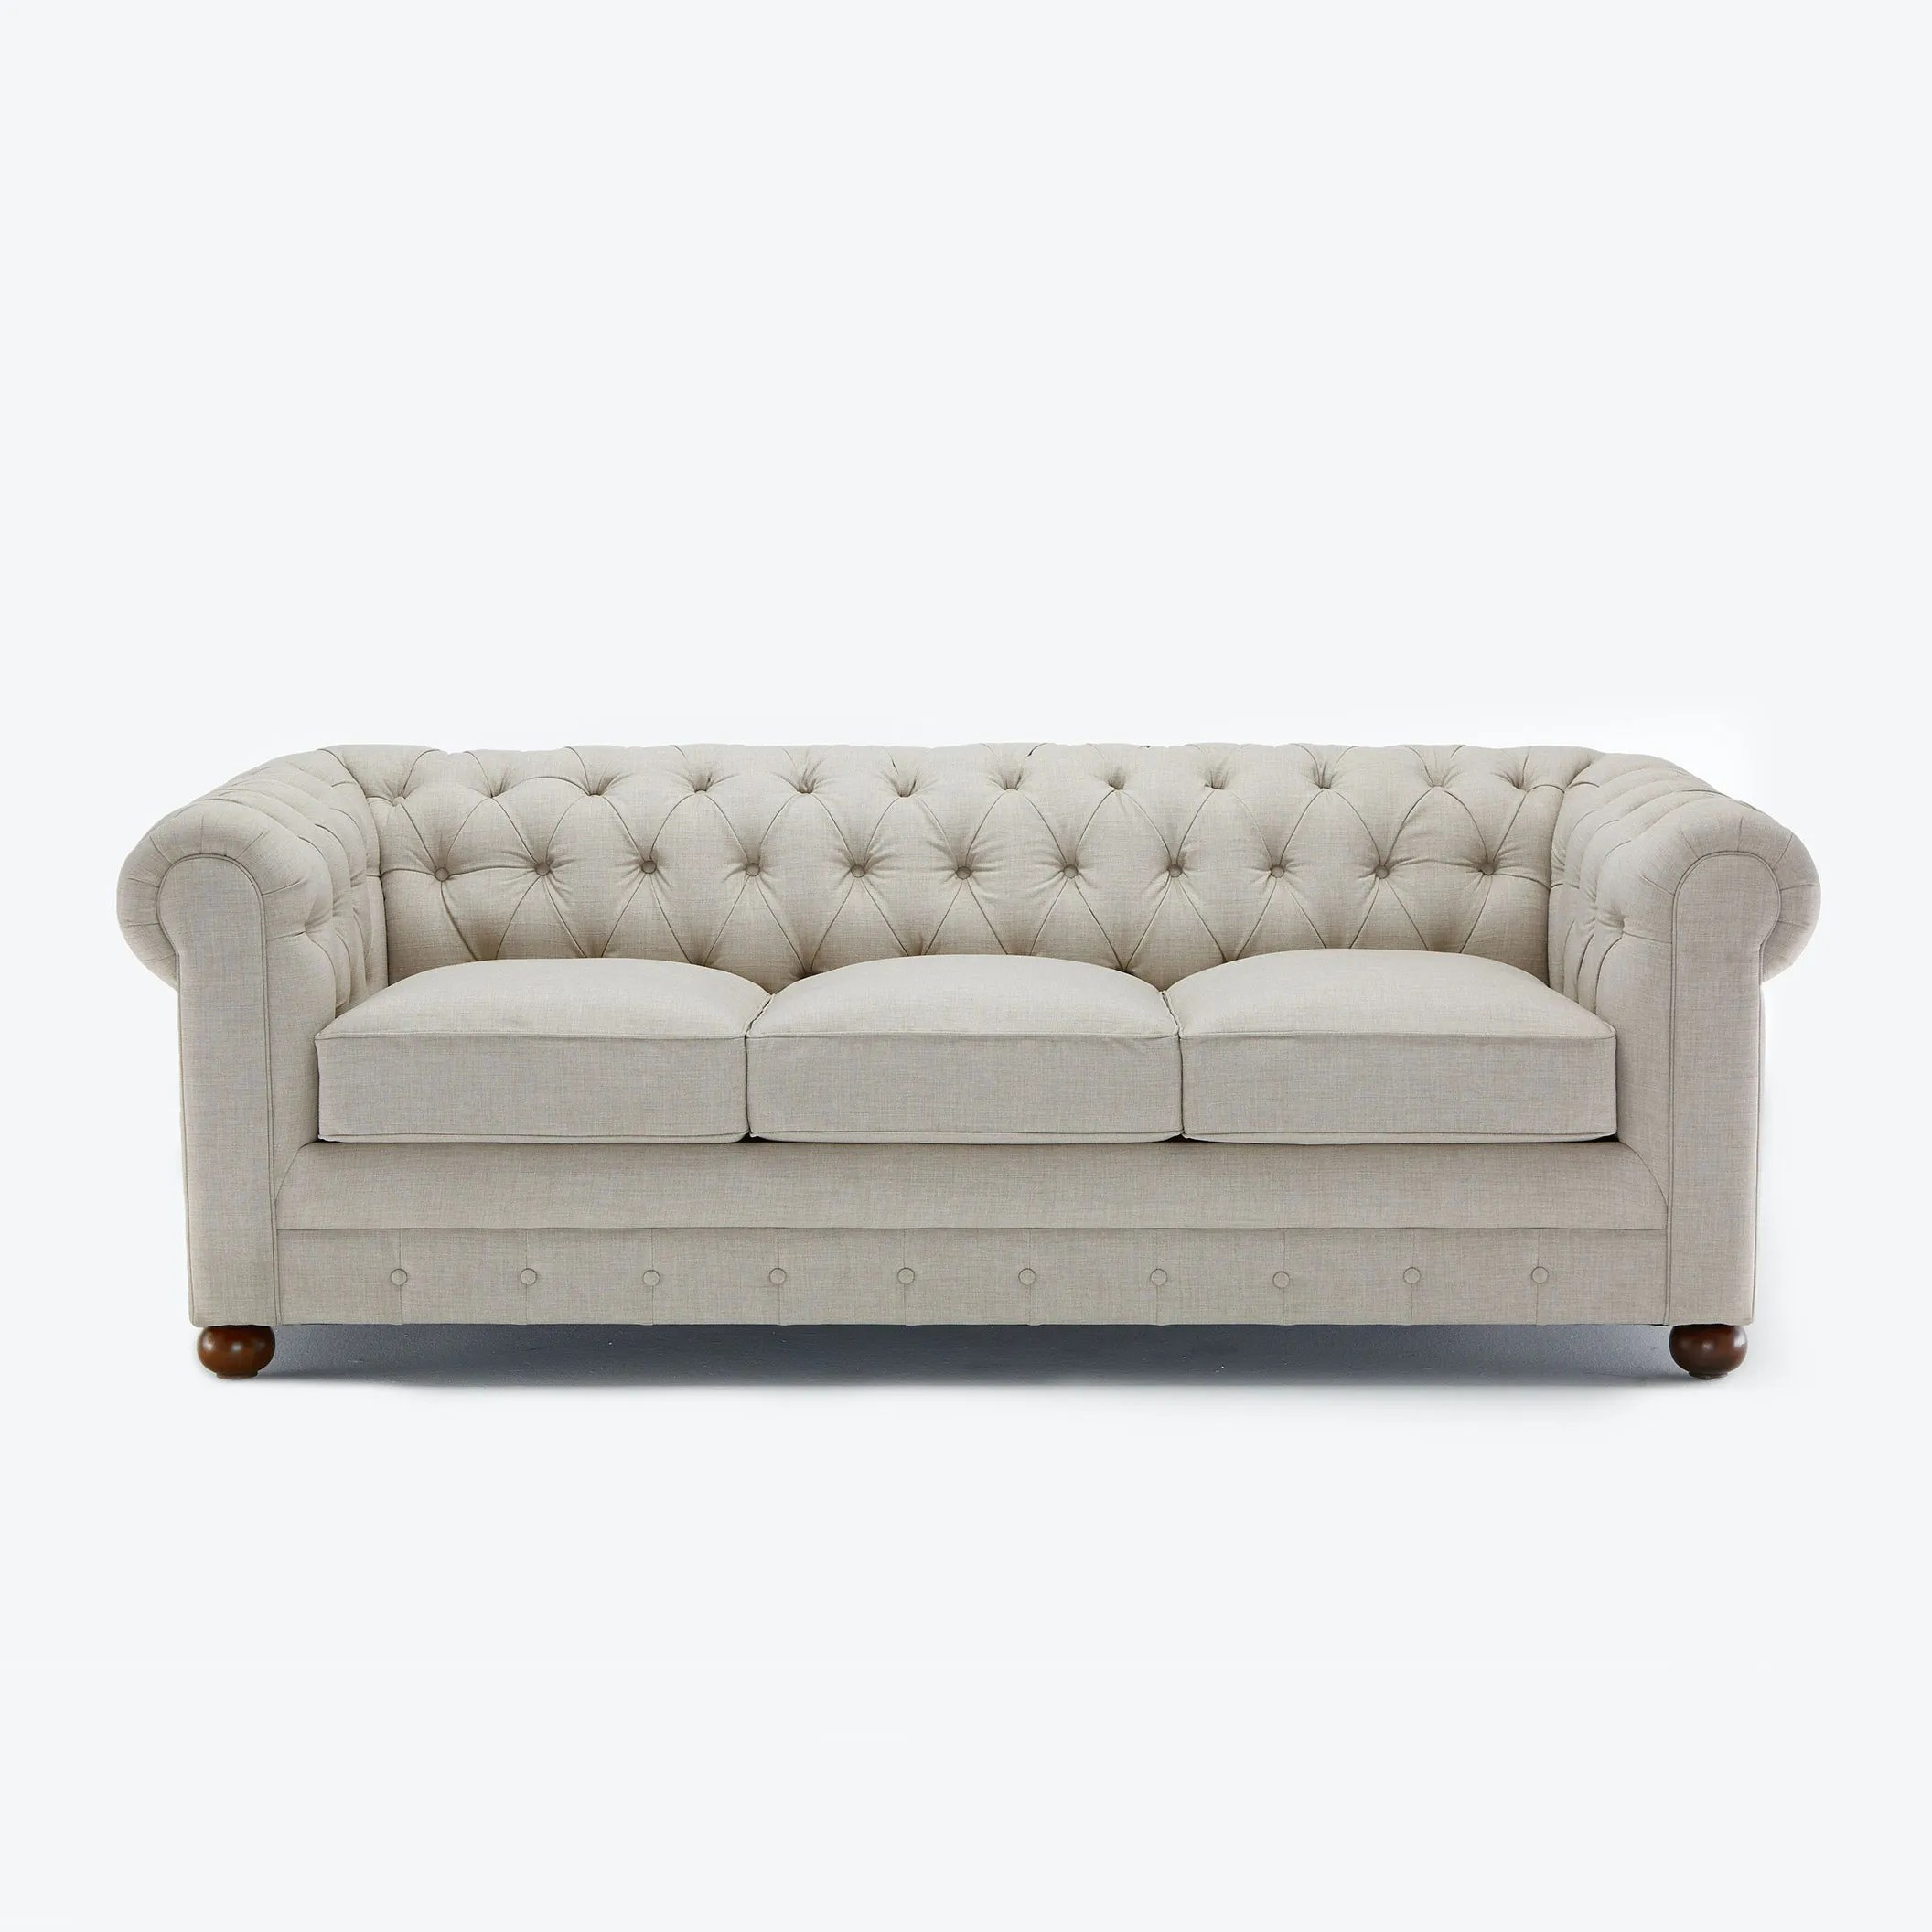 https nymag com strategist article best sleeper sofas pull out couches html